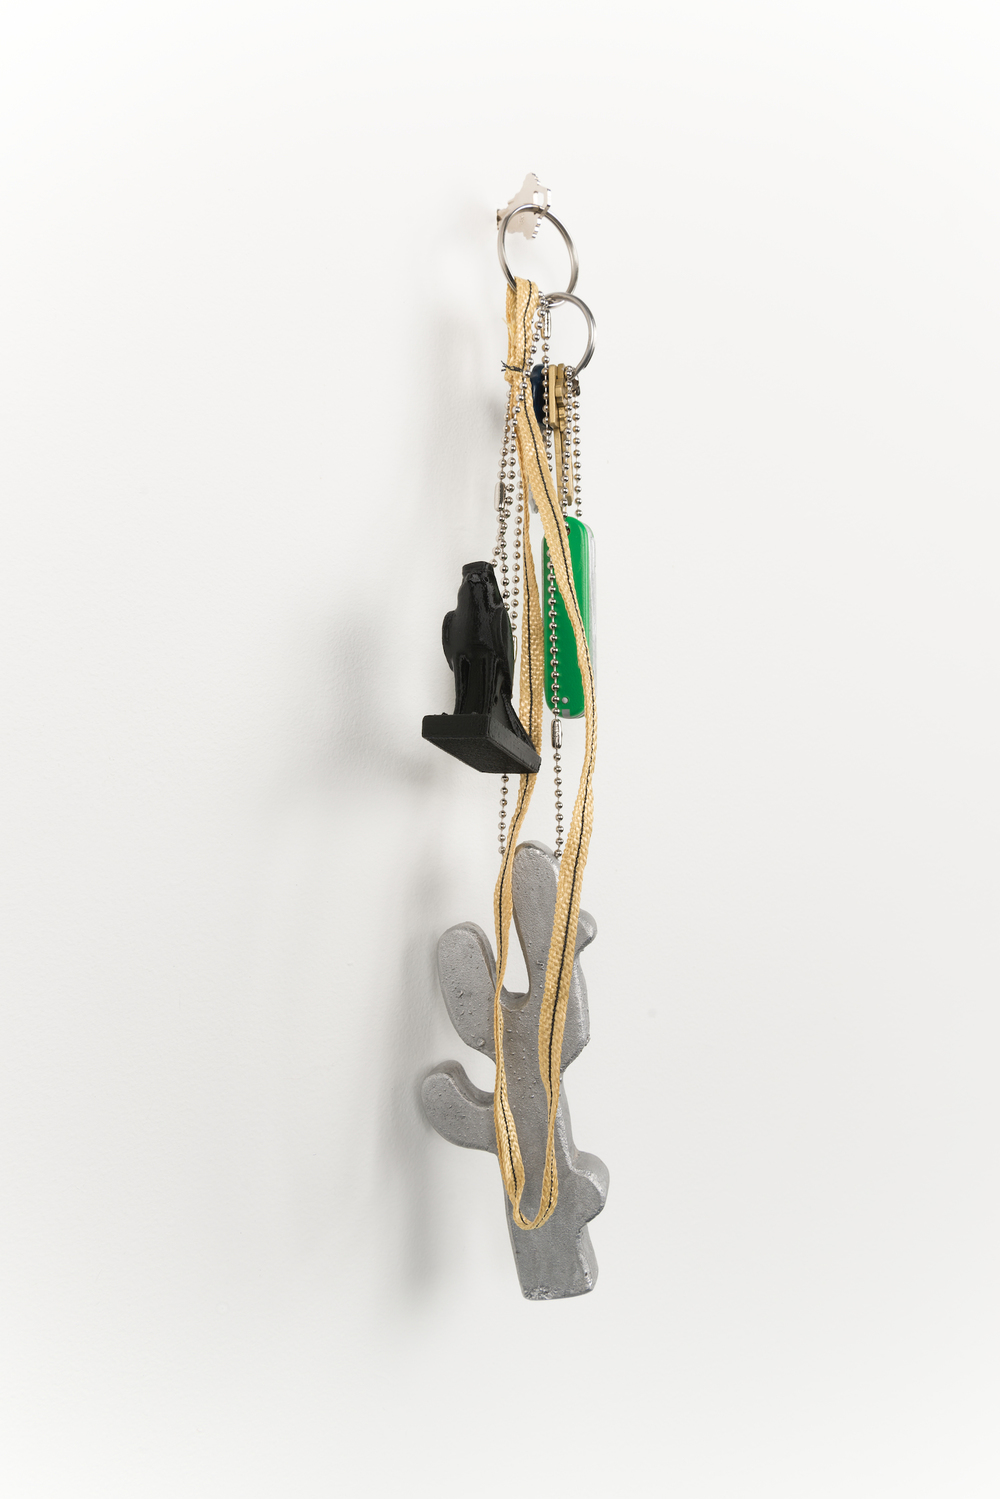 "Chris Bradley  Token (Cactus)  2013 Cast aluminum, wood, PLA, Kevlar, key rings, chain  17"" x 4"" x 3"" CB054"